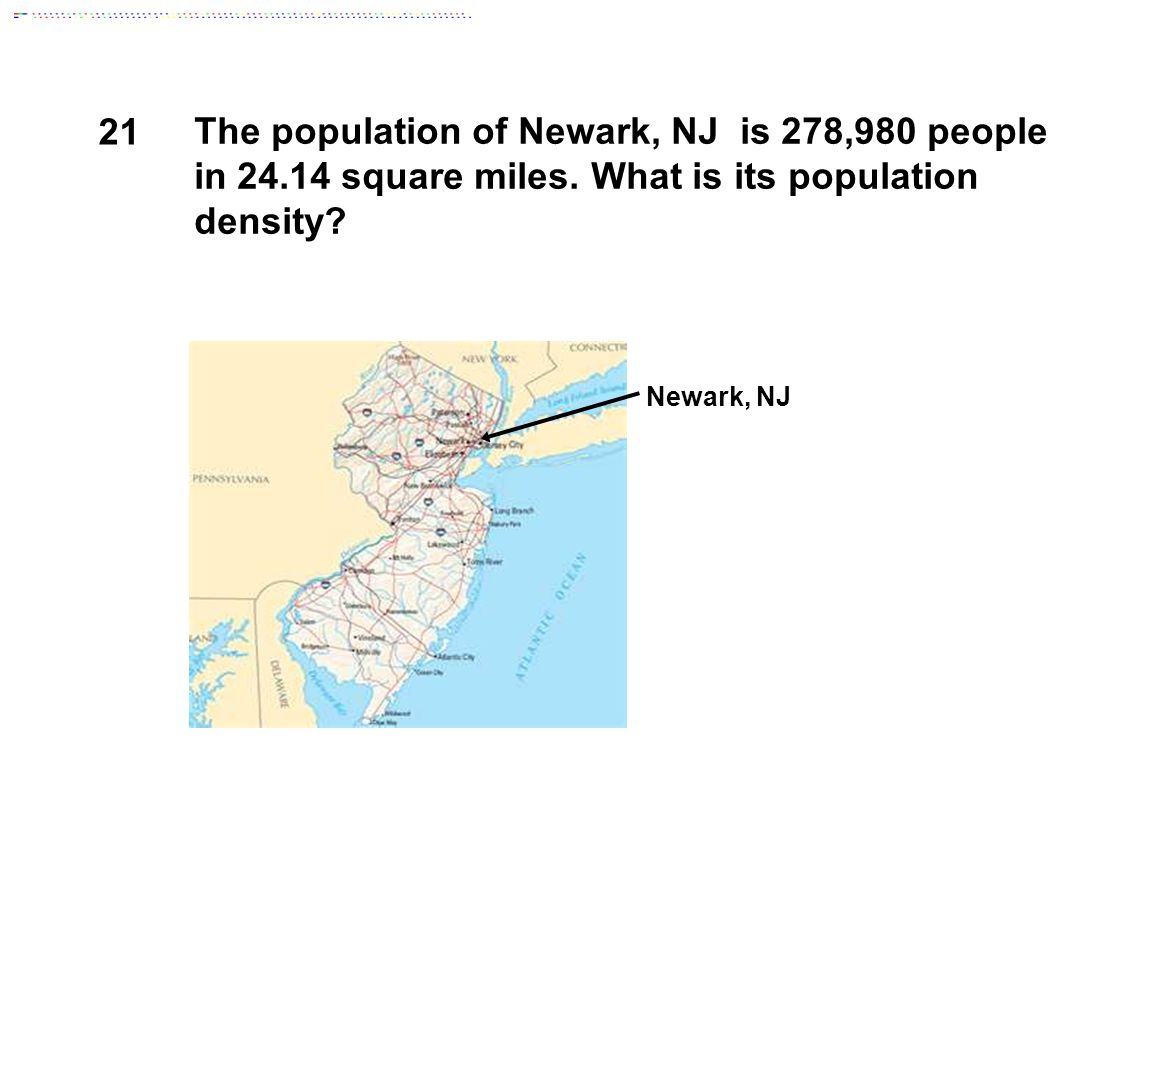 21 The population of Newark, NJ is 278,980 people in 24.14 square miles. What is its population density